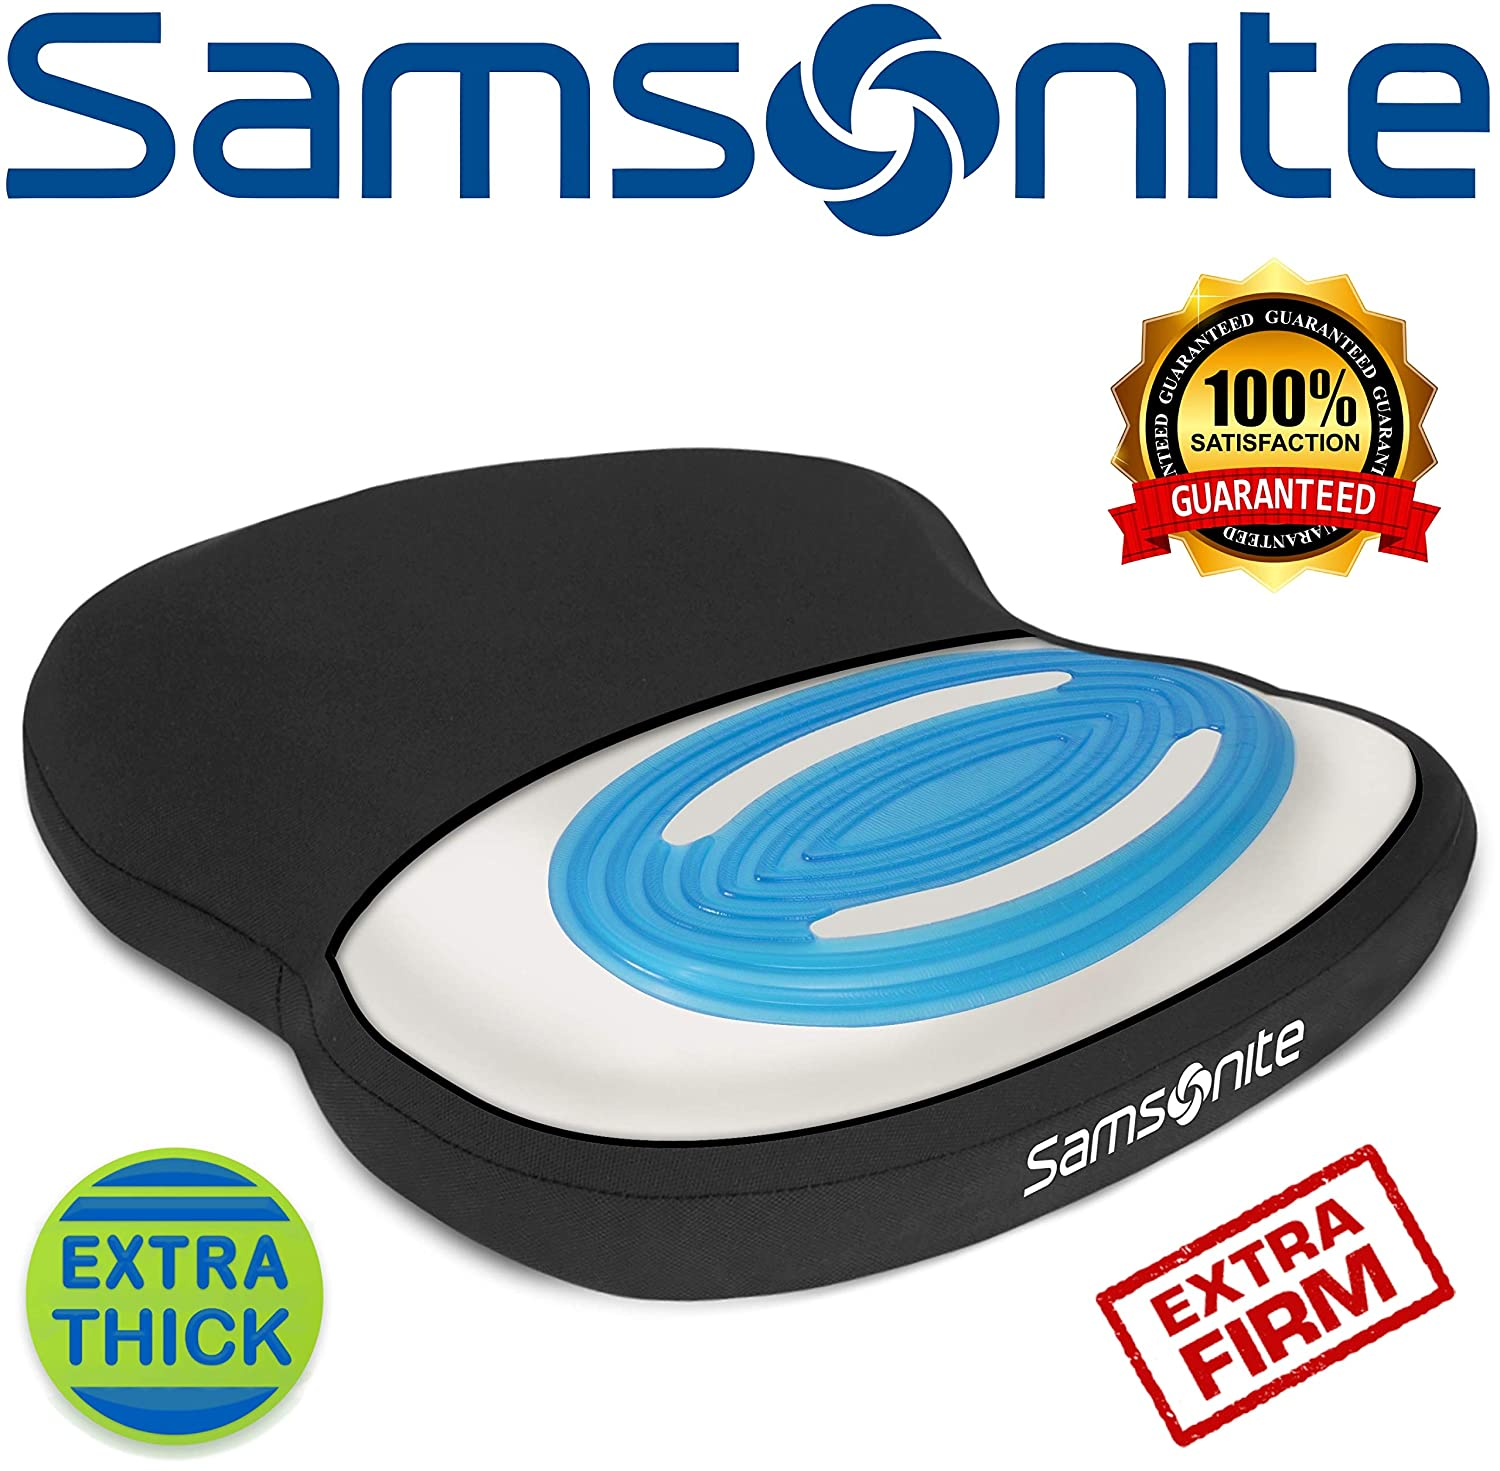 Samsonite SA6020 -Extra Firm & Thick Seat Cushion with Cooling Gel [Cooling effect is subjective, and varies by personal sensitivity] - Premium Memory Foam - Fits Most Seats - Non-Slip Bottom